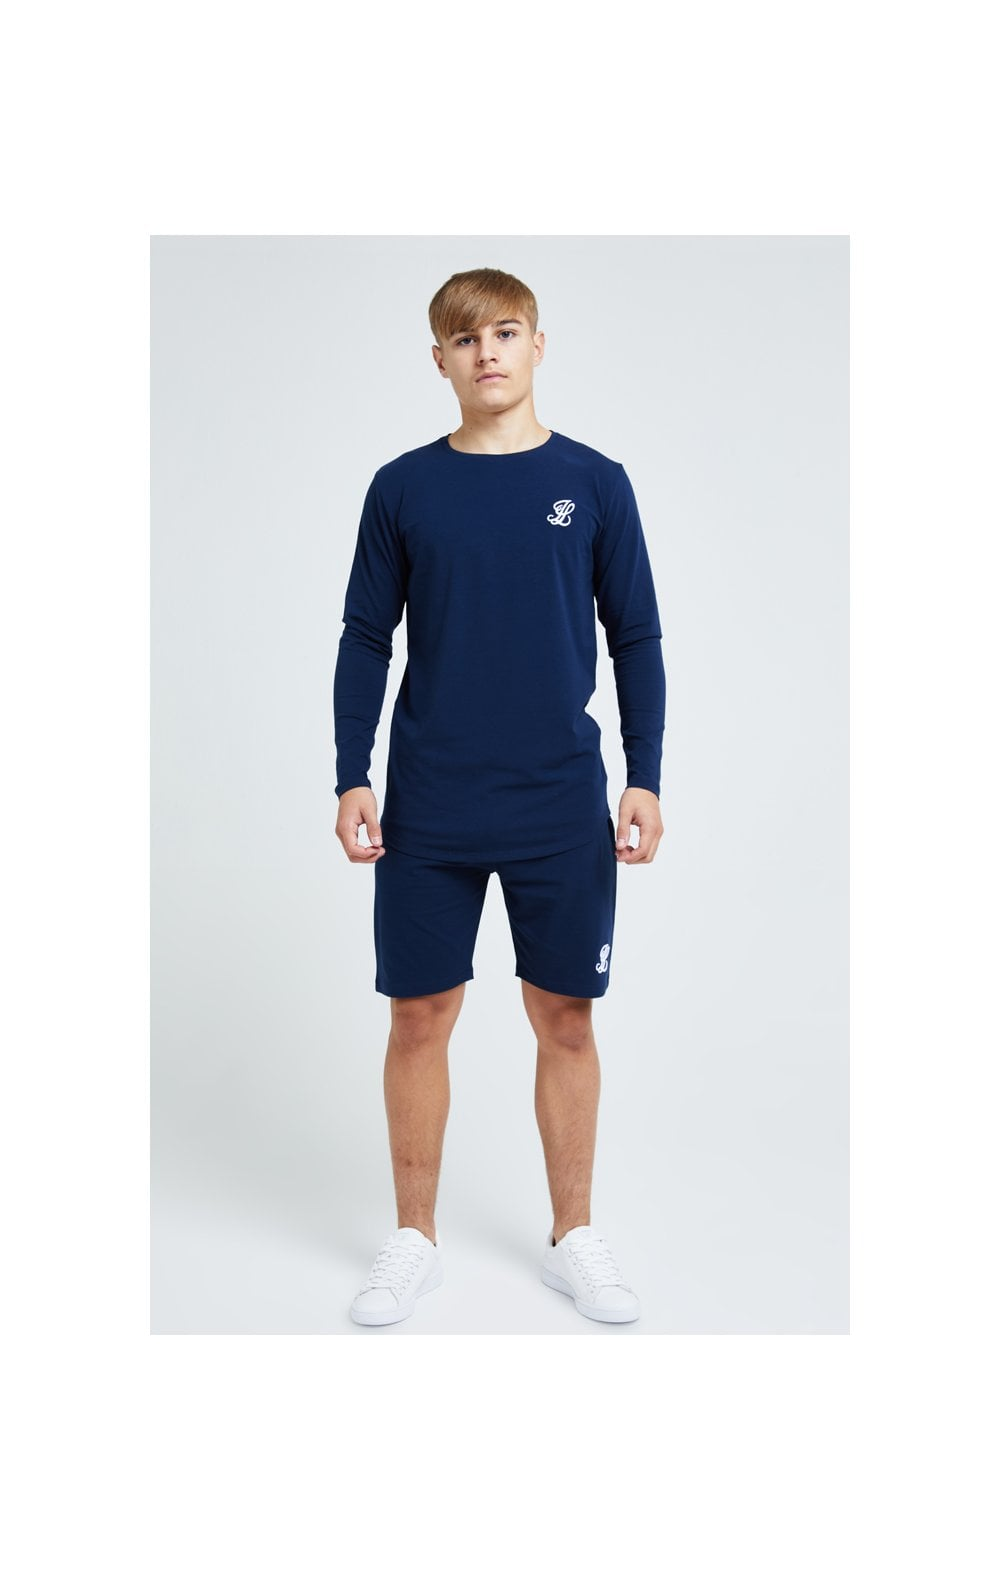 Illusive London Core Jersey Shorts - Navy (5)